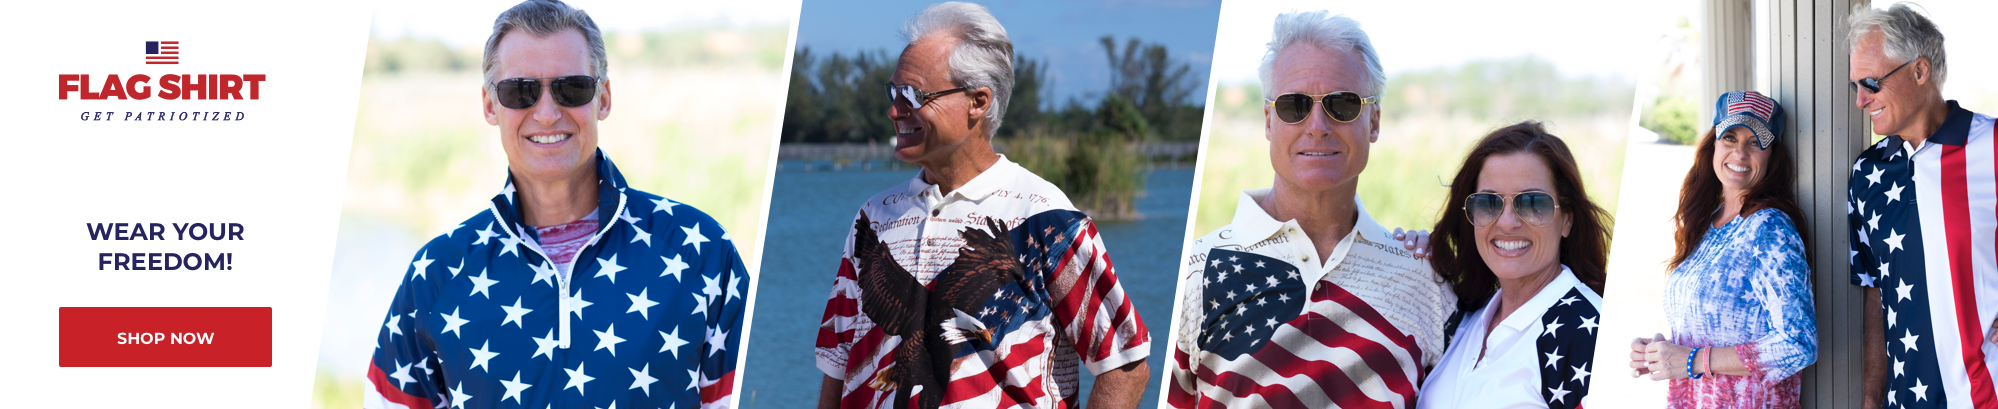 The Flag Shirt - Wear Your Freedom